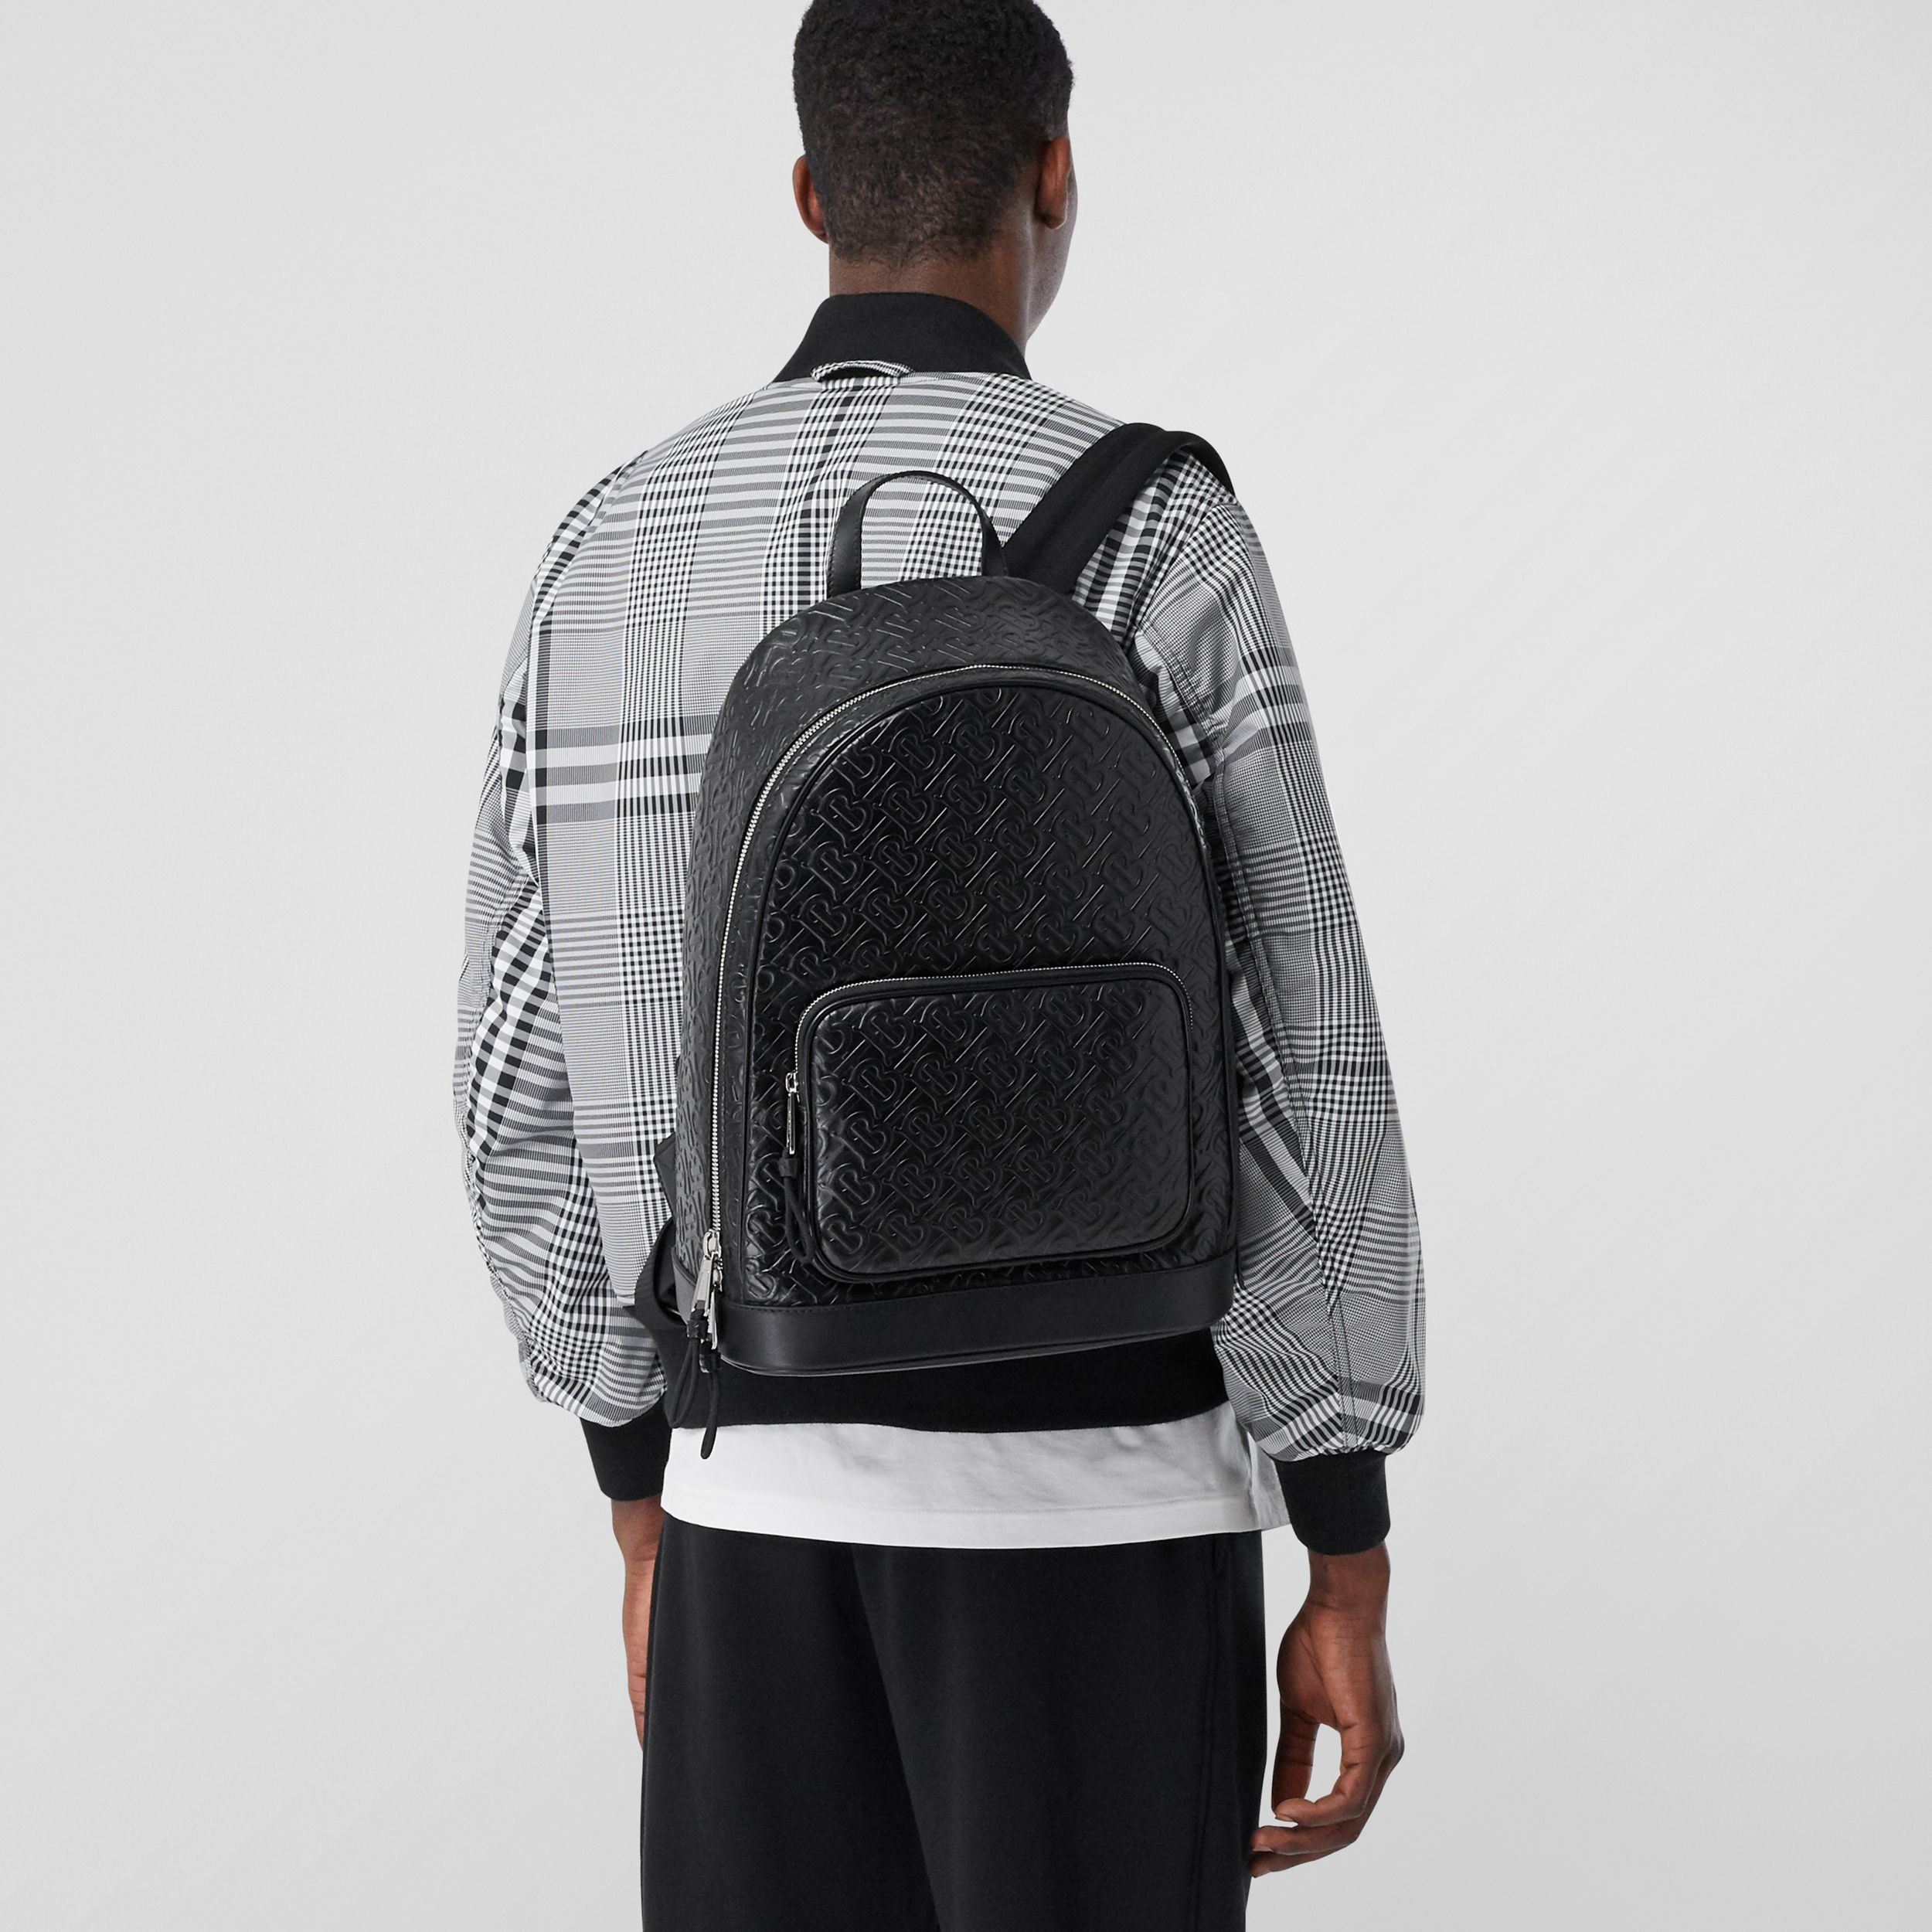 Monogram Leather Backpack in Black - Men | Burberry - 3